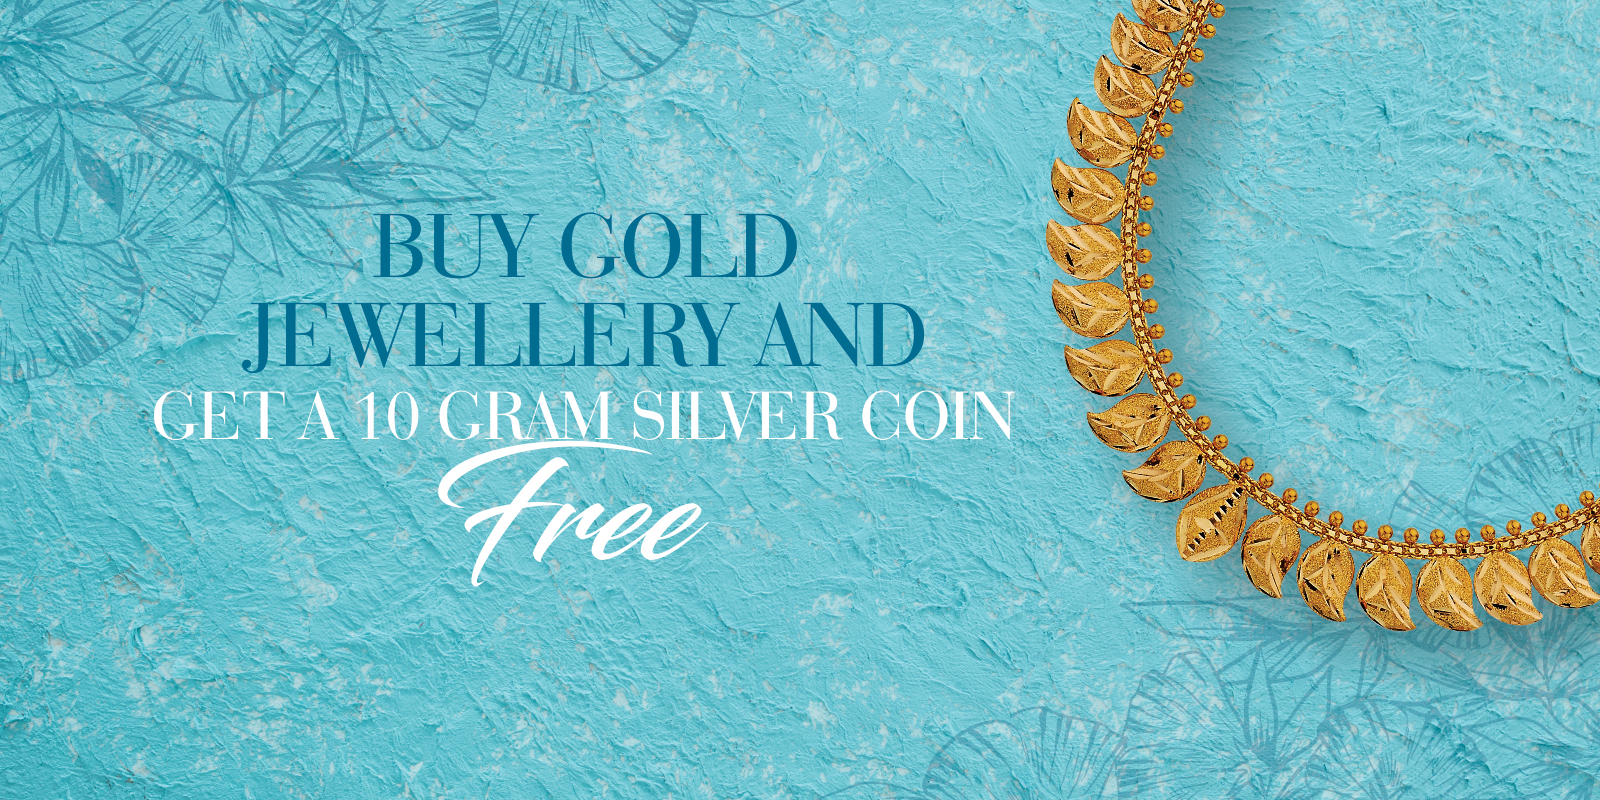 Silver Coin free on Gold Jewellery